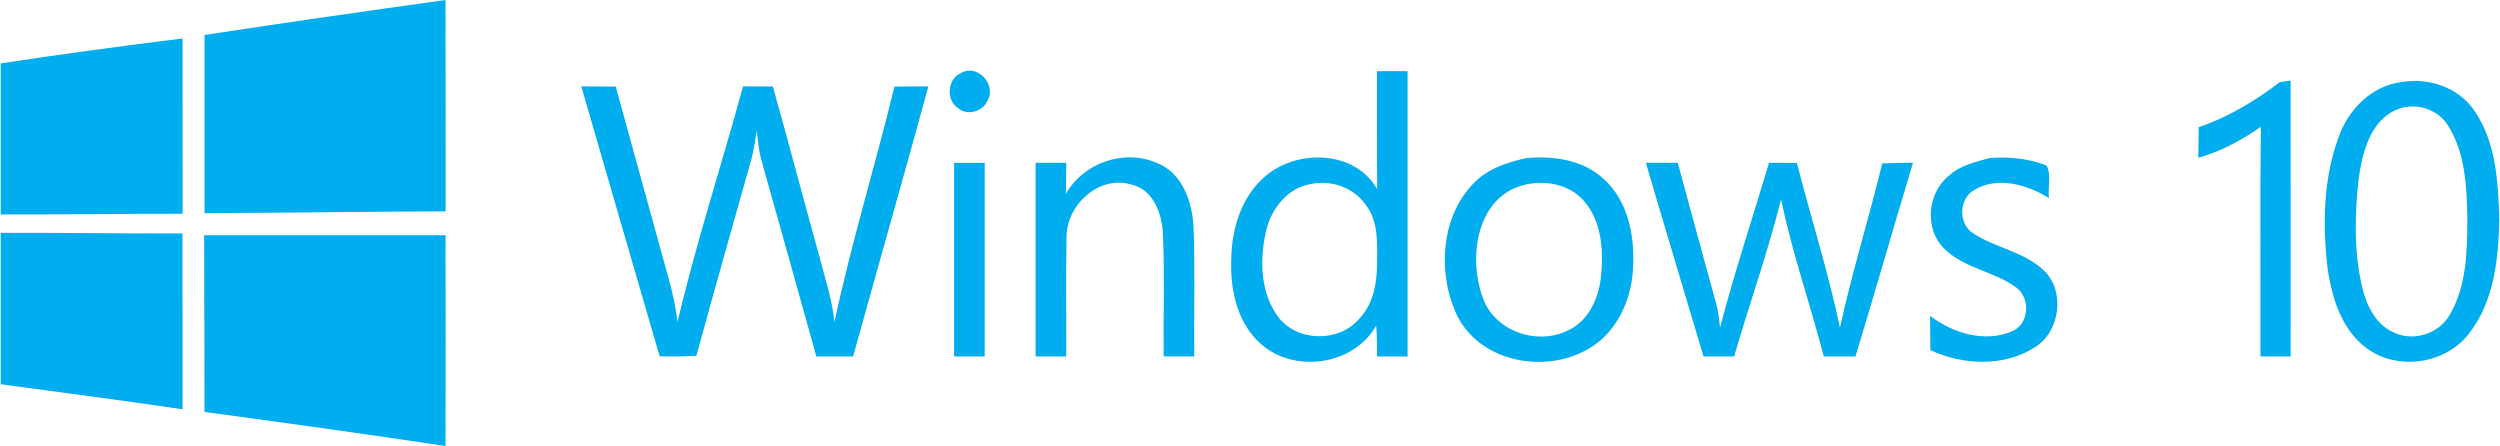 Windows transparent 10. Logo png